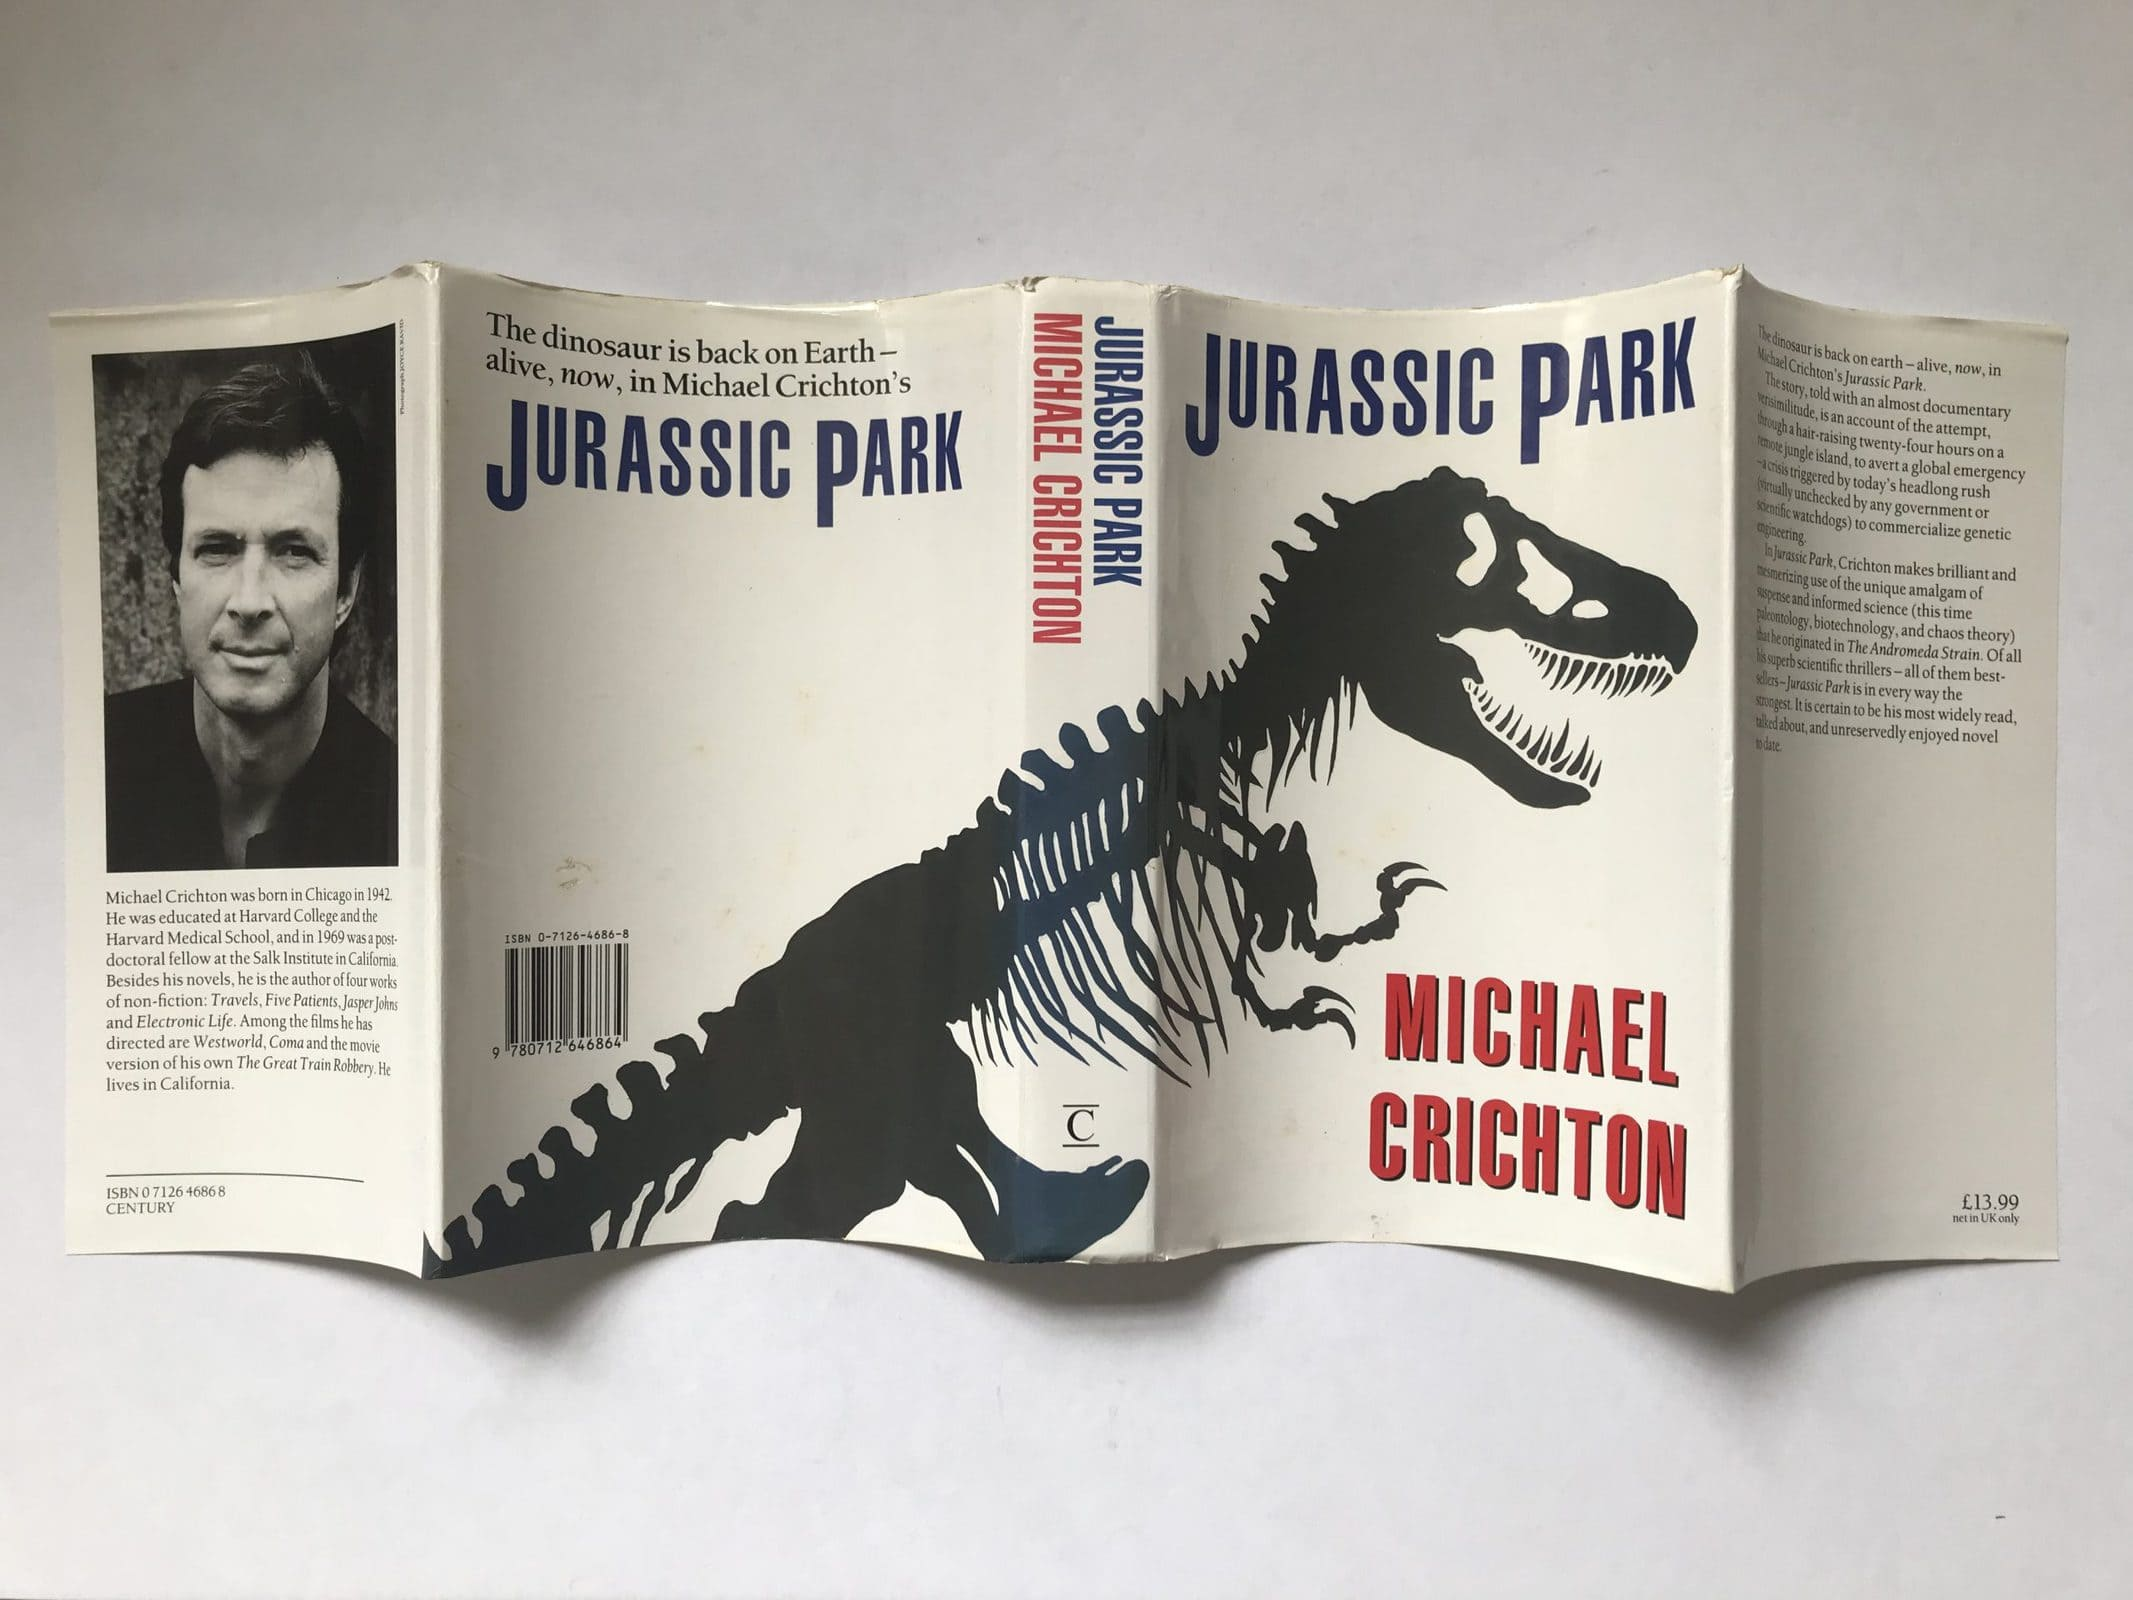 This book jacket from the first UK edition of Jurassic Park shows how the T. rex skeleton body wraps across the back and front of the book, while carefully avoiding placing his pelvis on the front cover. It also shows how the original dinosaur drawing was a very dark green. This edition is listed by John Atkinson Fine & Rare Books (and at time of posting is still available).